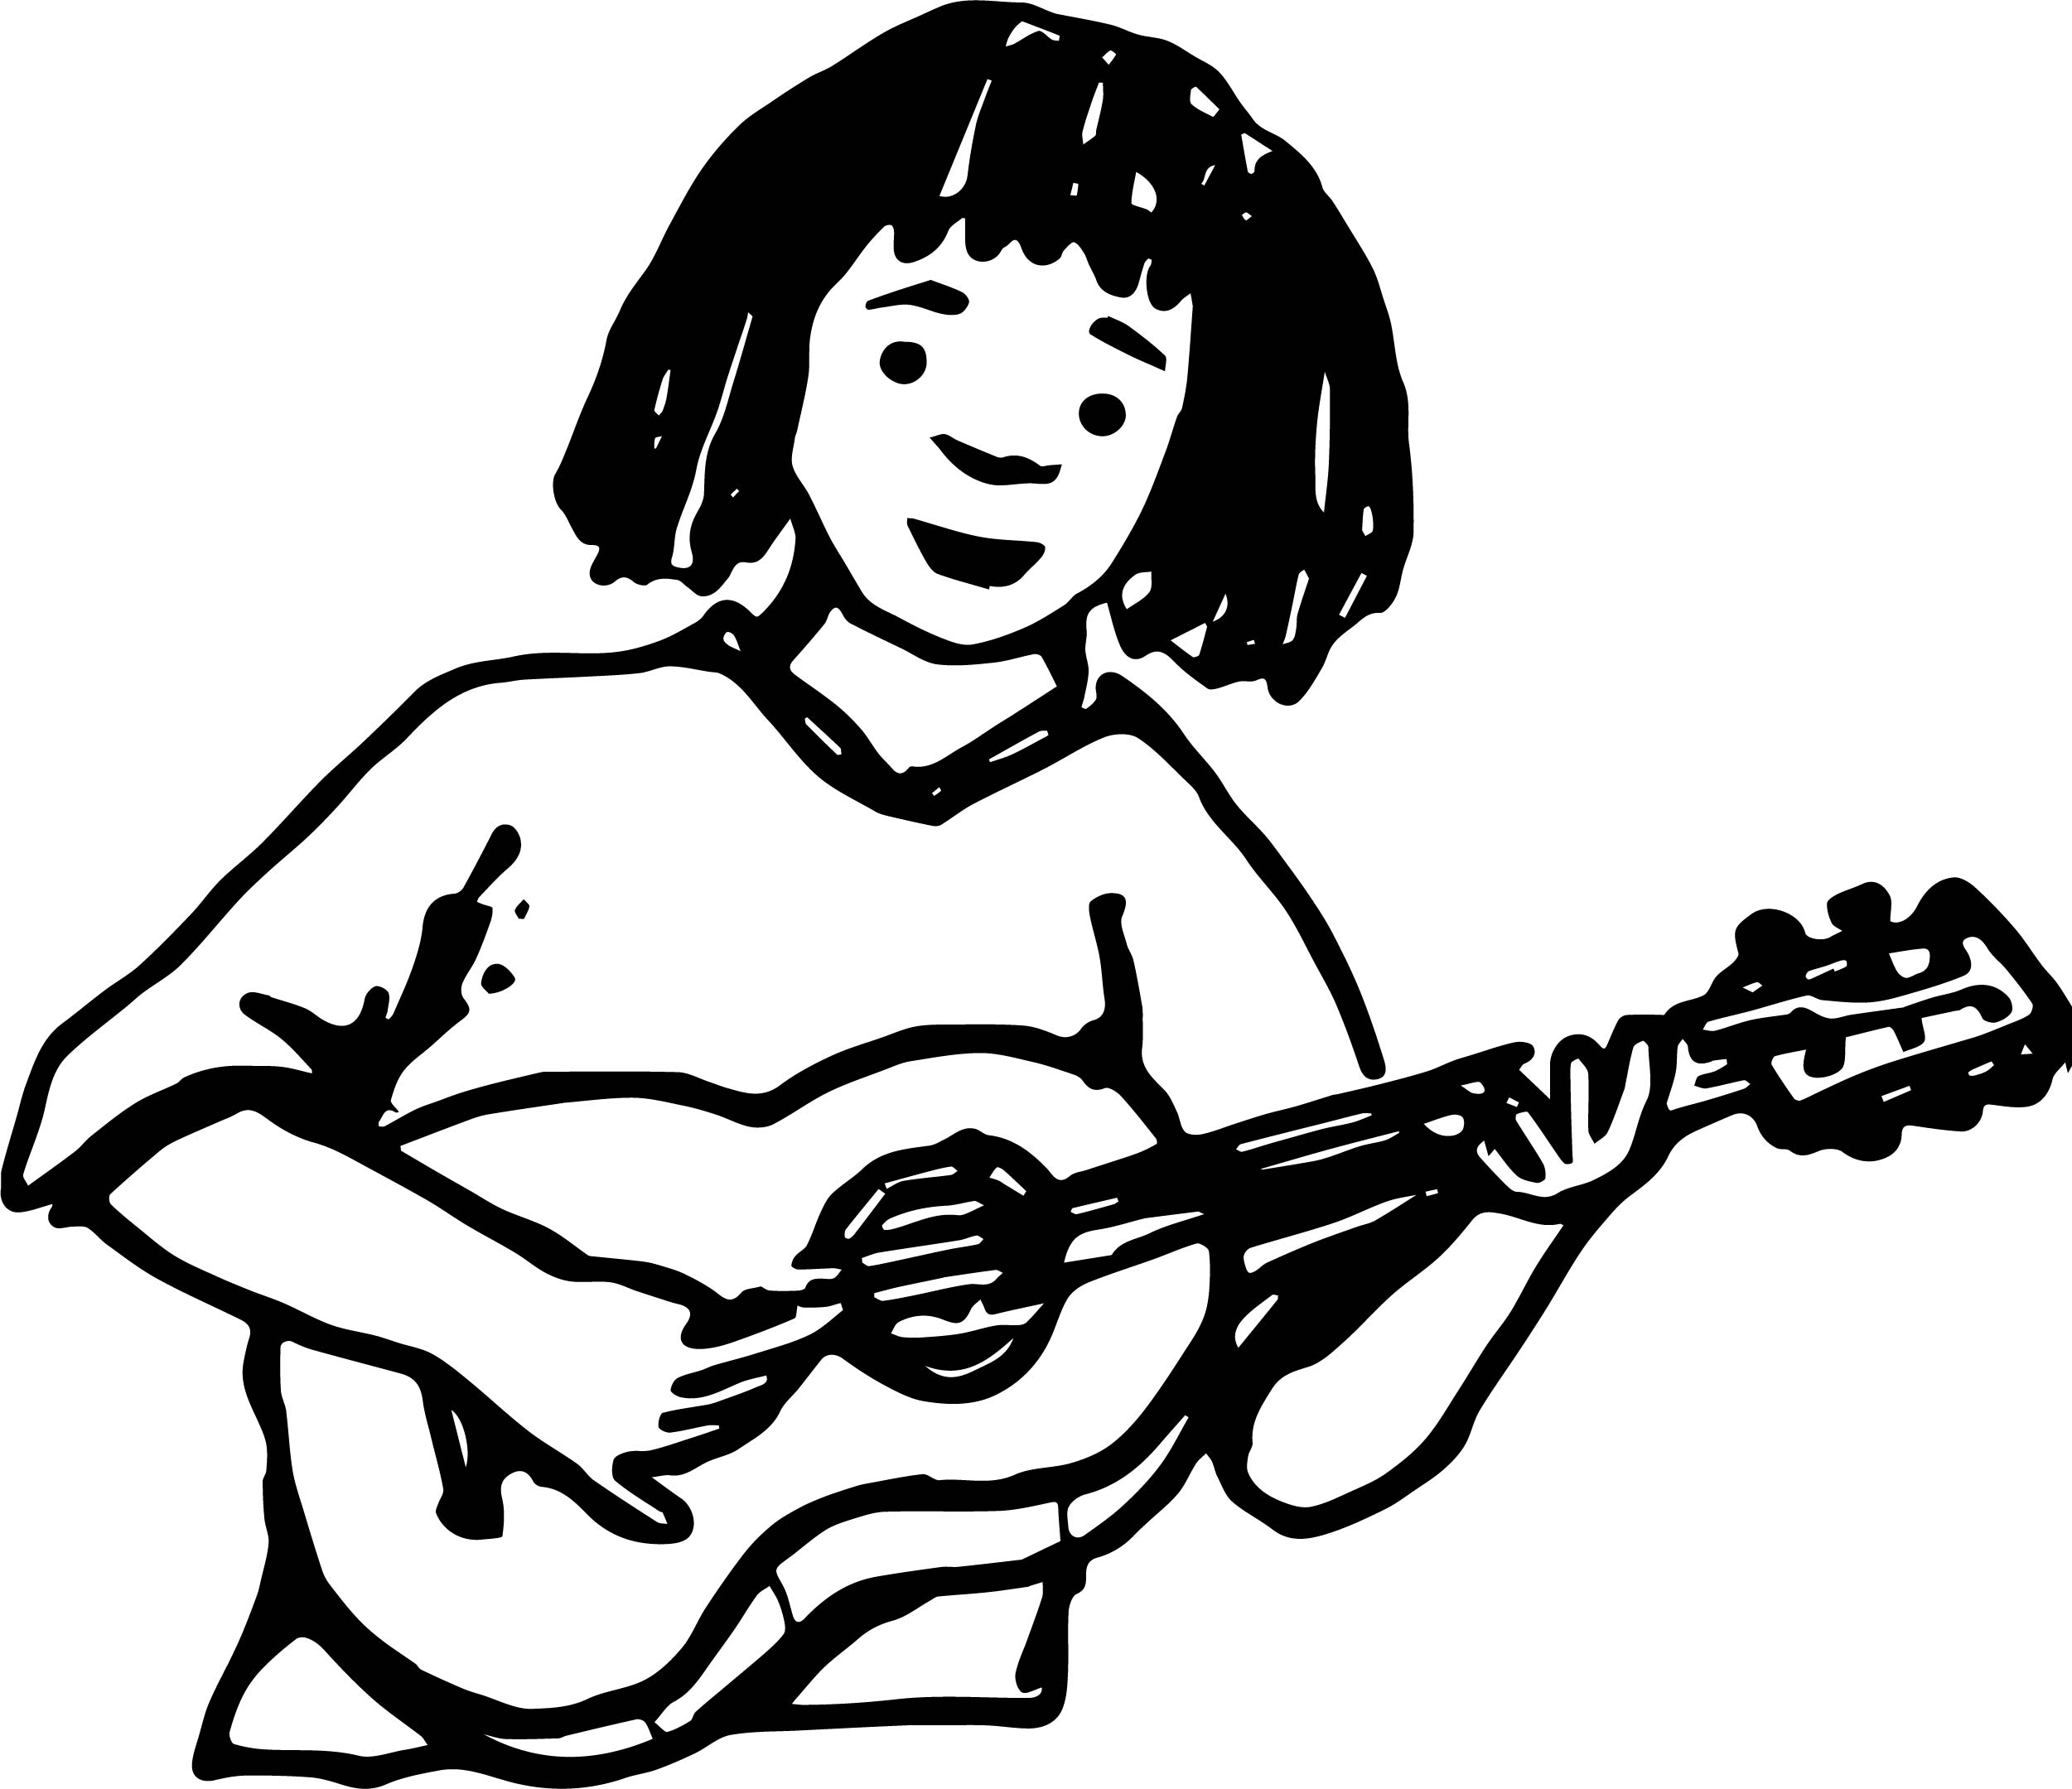 Hobby Guitar Player Color Playing The Guitar Coloring Page - Guitar-player-coloring-page